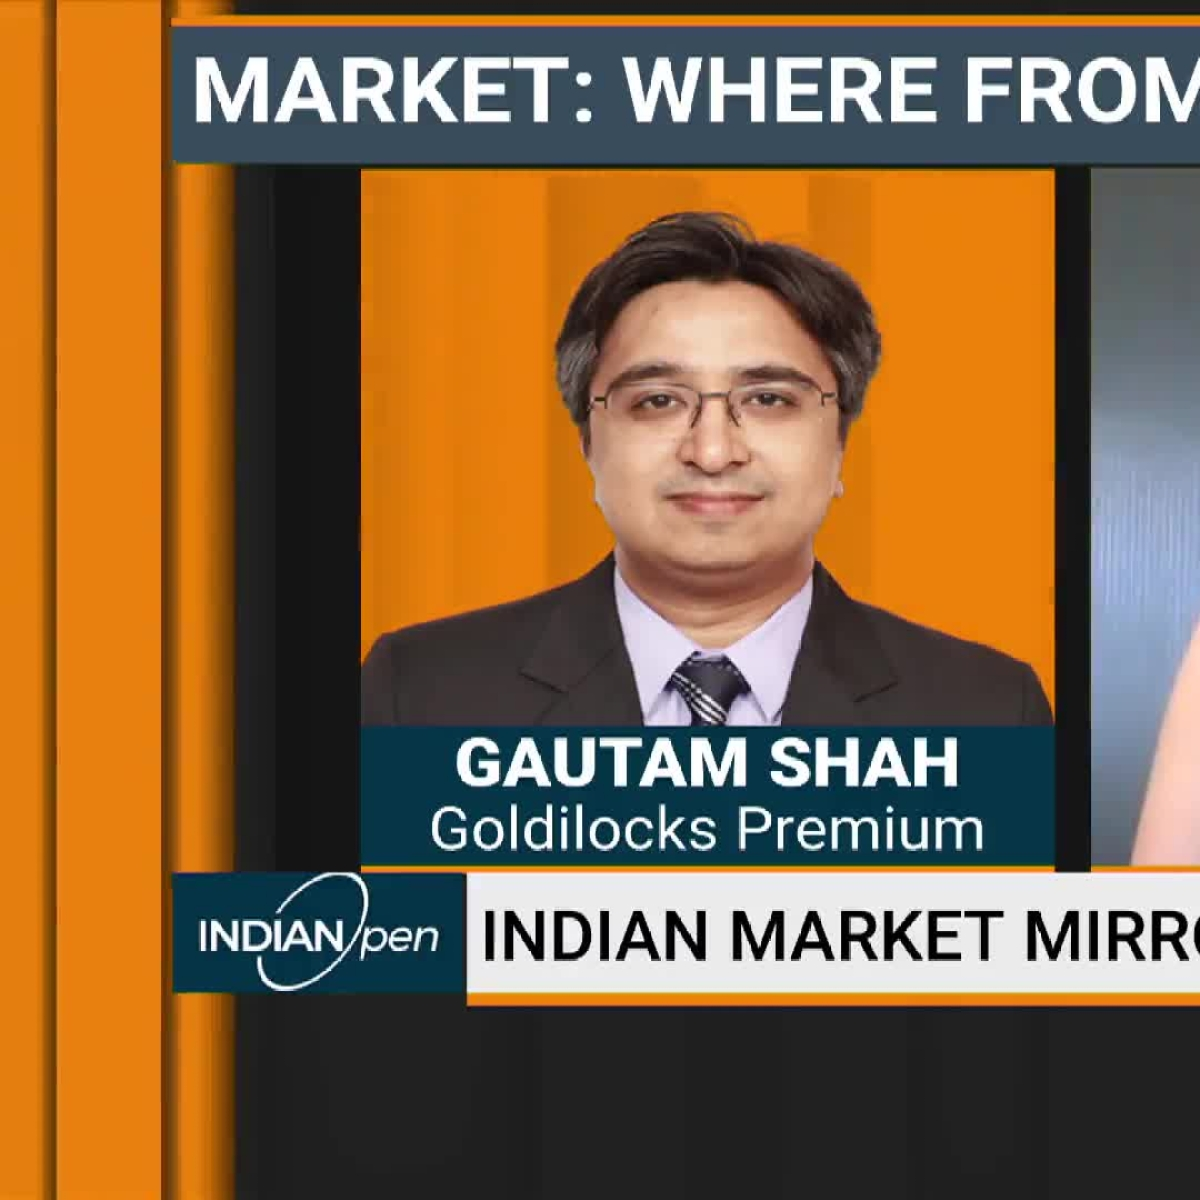 Indian Market Mirrors Global Gains